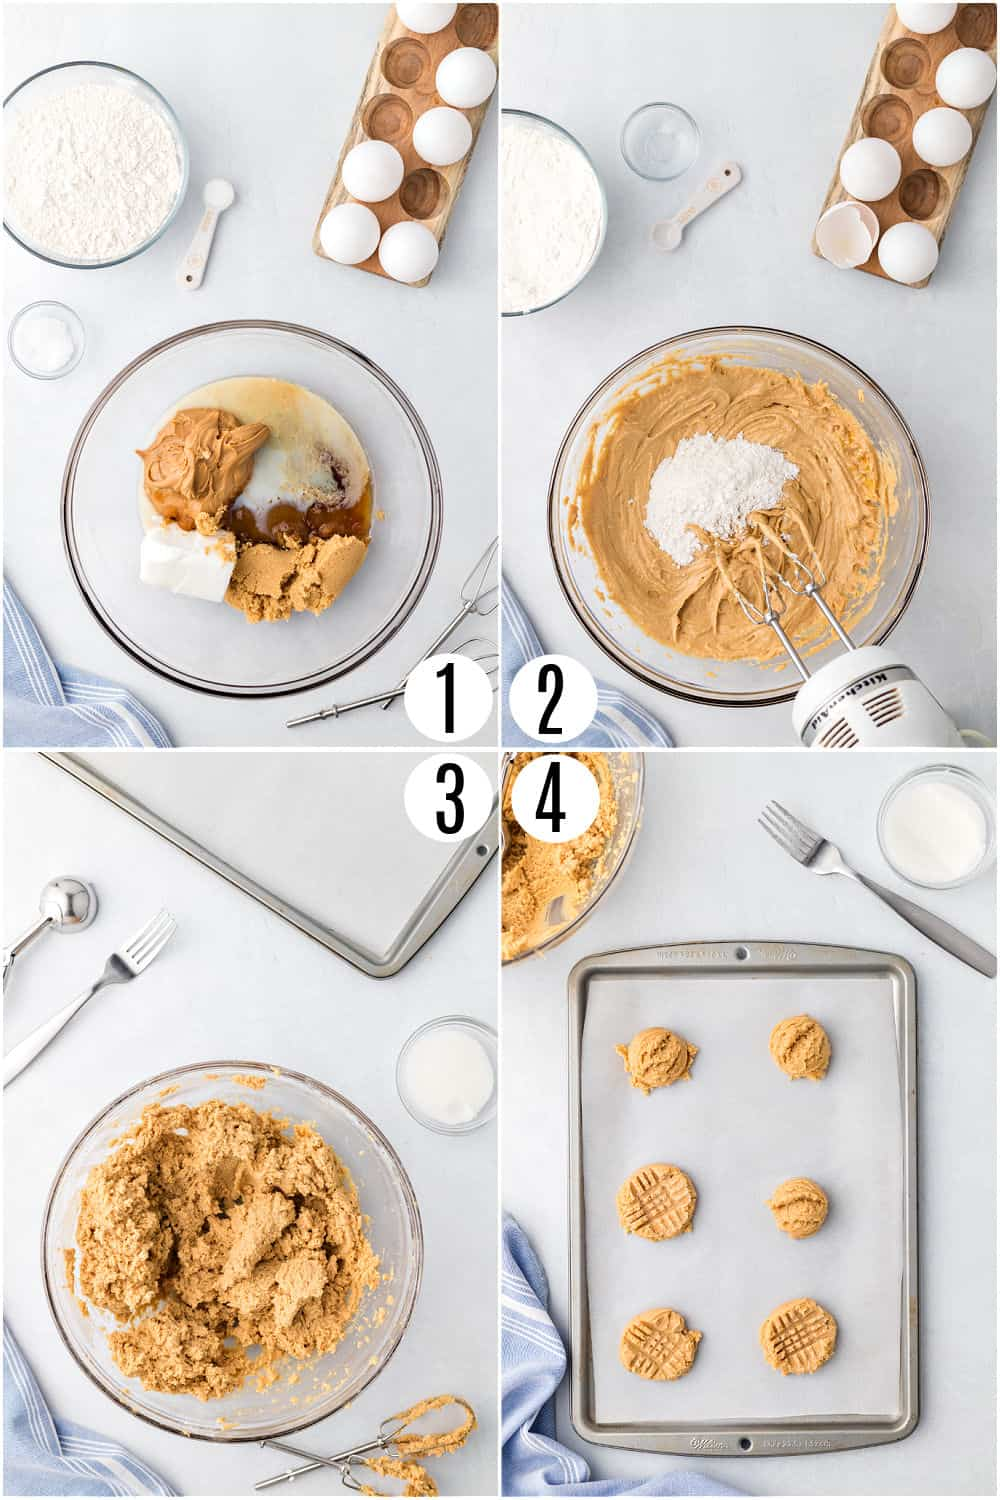 Step by step photos showing how to make Jif peanut butter cookies.